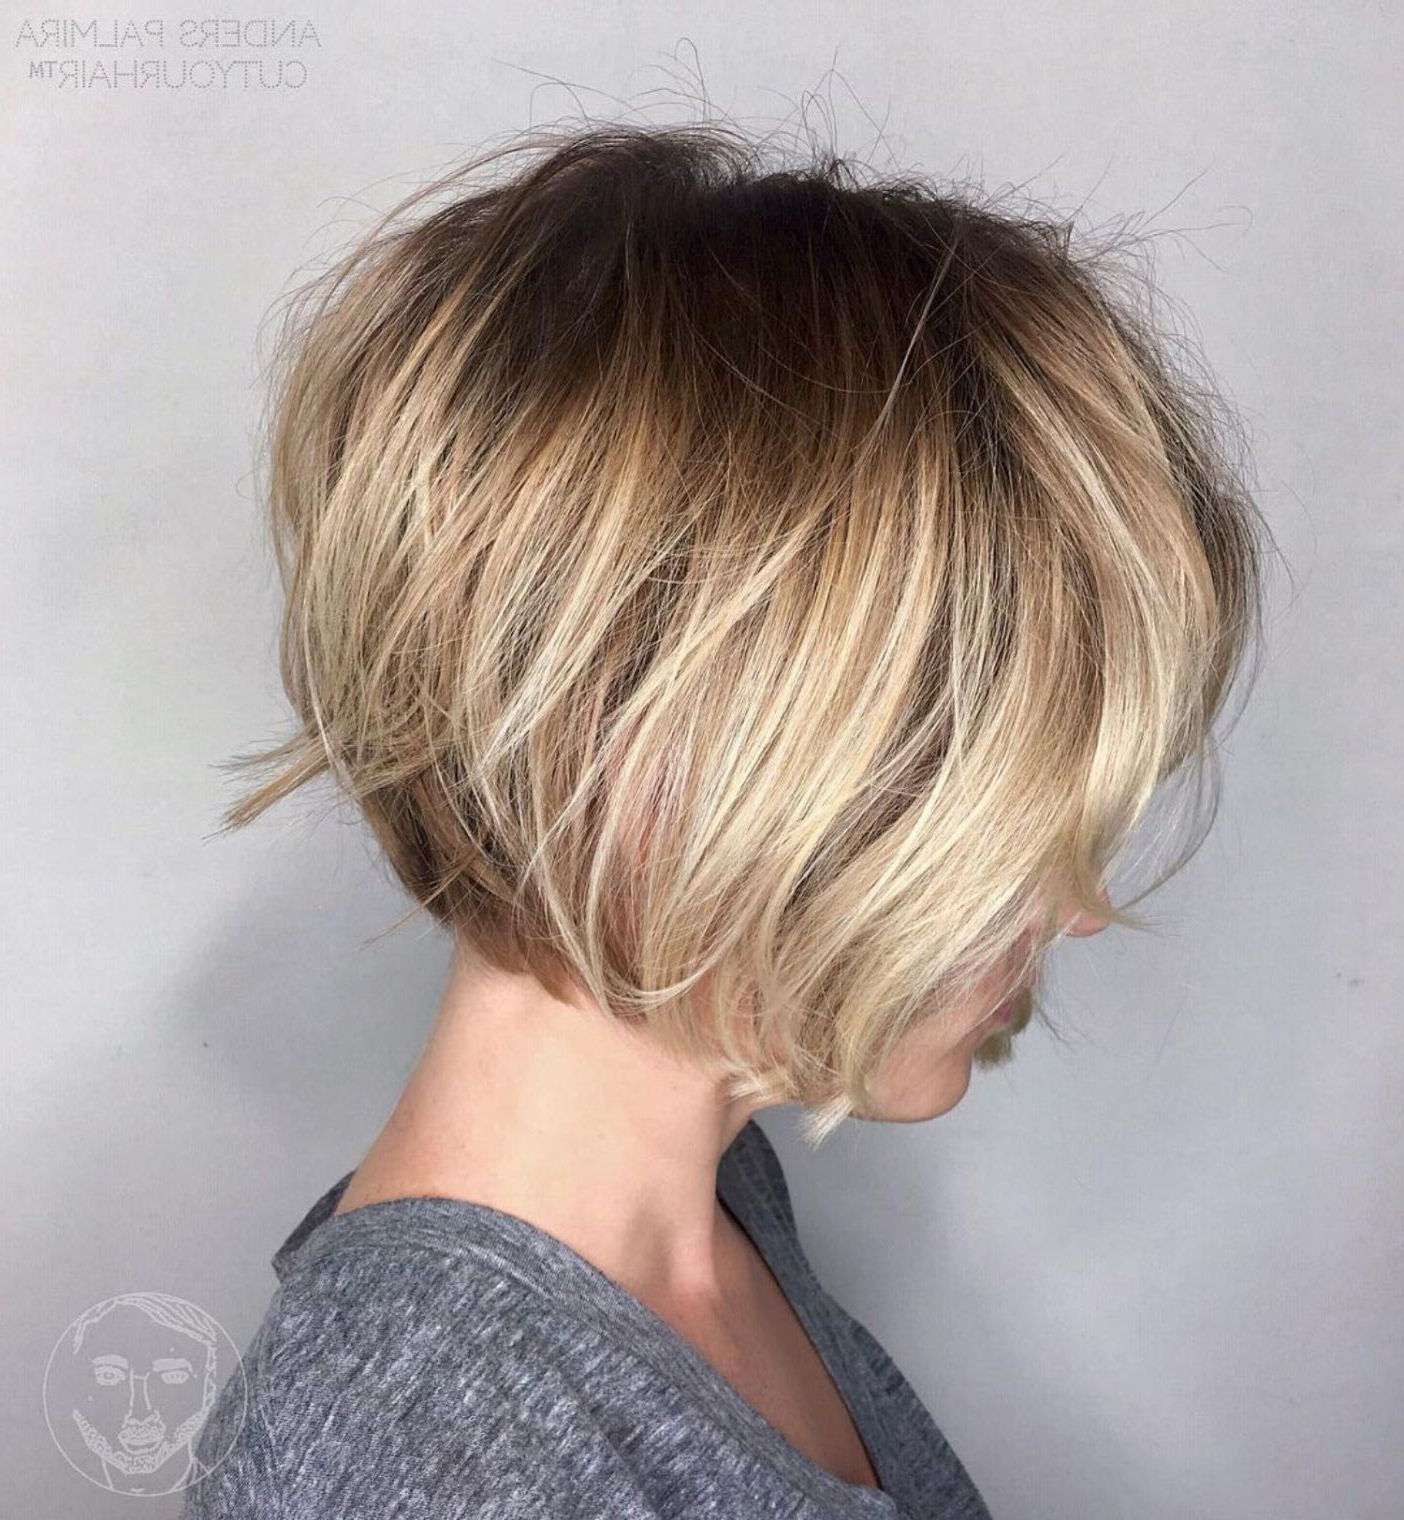 70 Winning Looks With Bob Haircuts For Fine Hair In 2018 | Hair In Stacked Blonde Balayage Pixie Hairstyles For Brunettes (View 15 of 20)